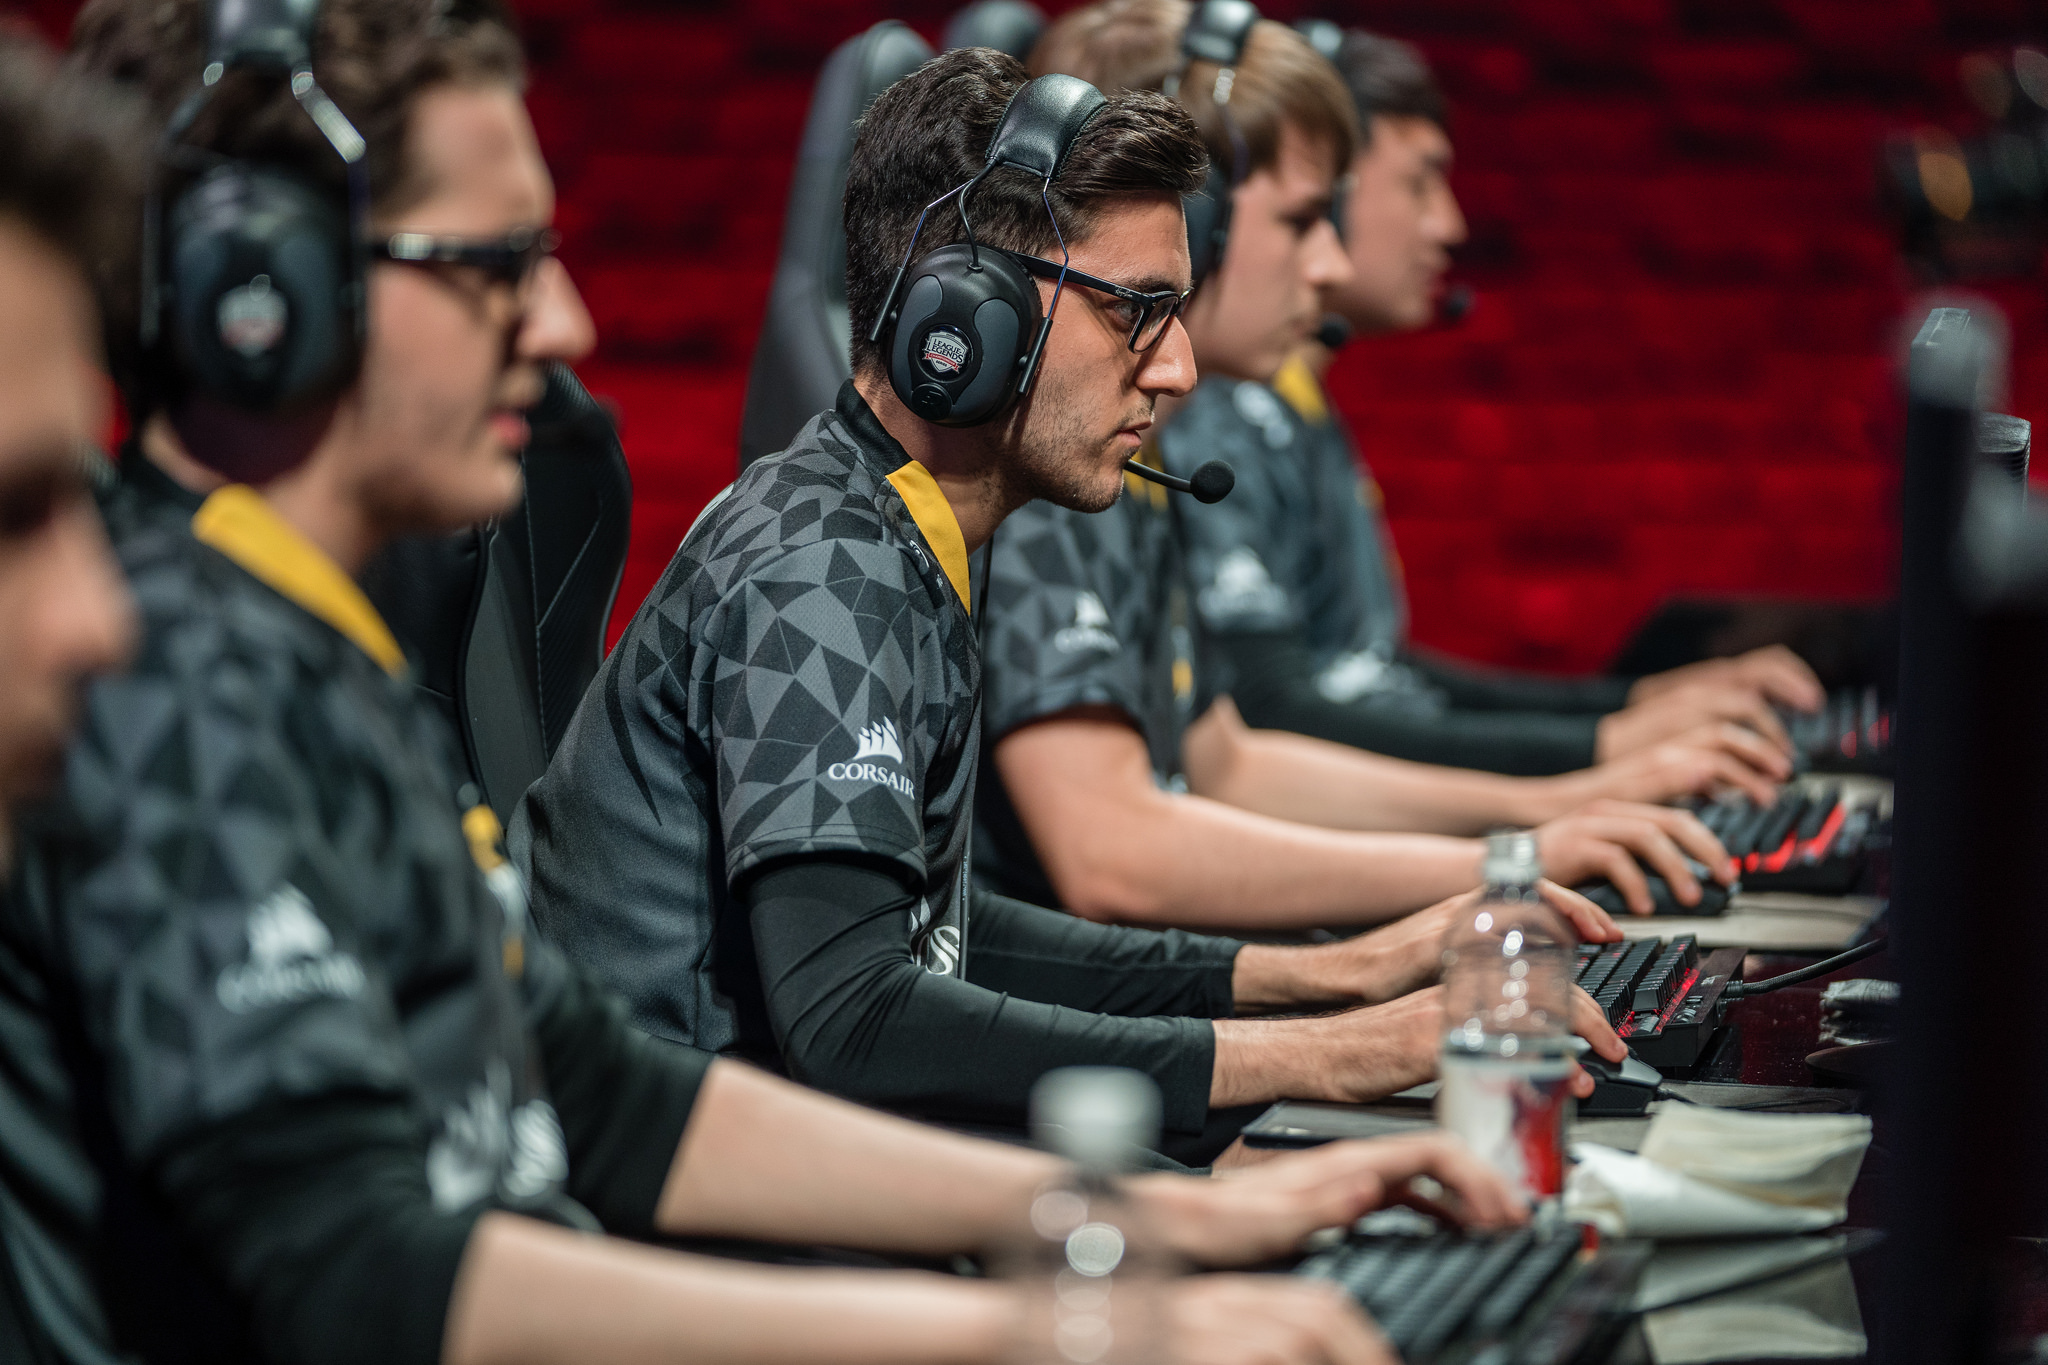 Poor individual play and communication issues have led to Splyce's rocky start in the EU LCS